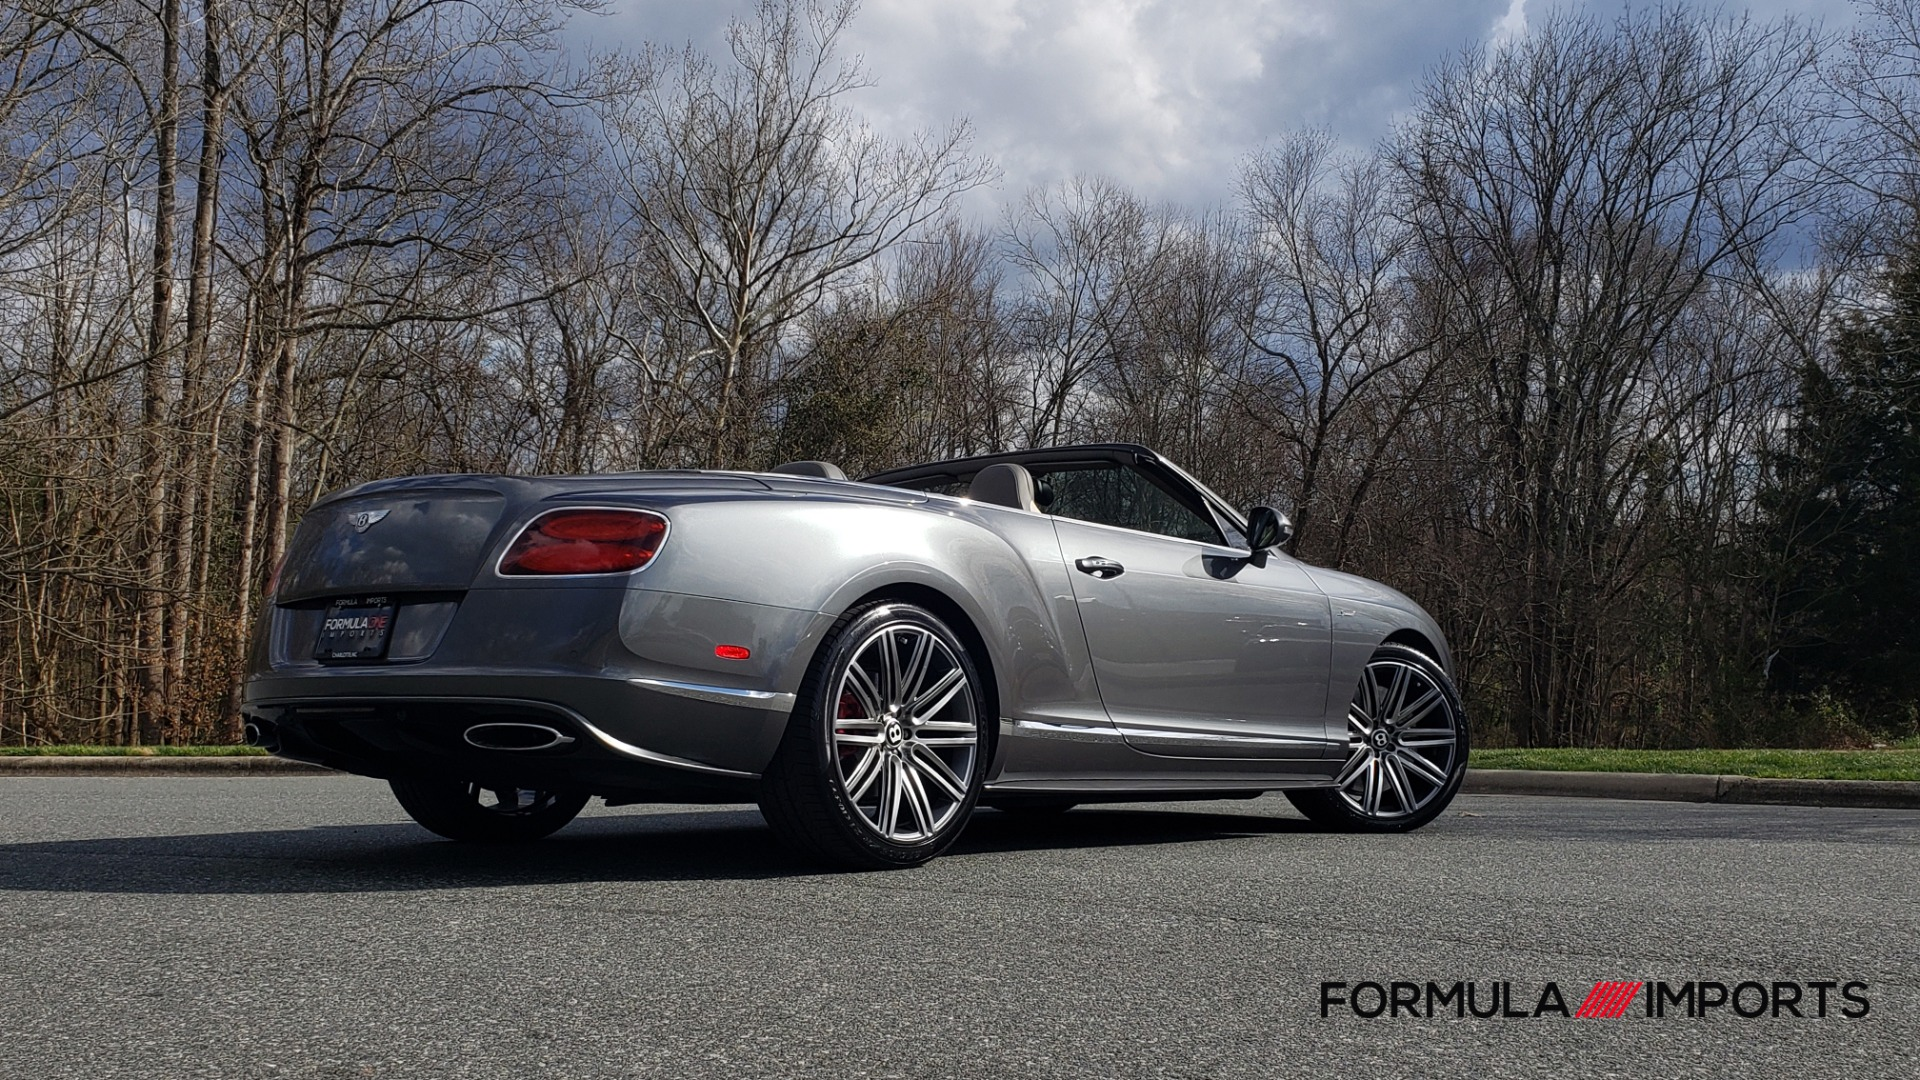 Used 2015 Bentley CONTINENTAL SPEED CONV / 6.0L W12 / NAV / VENT SEATS / REARVIEW for sale Sold at Formula Imports in Charlotte NC 28227 9